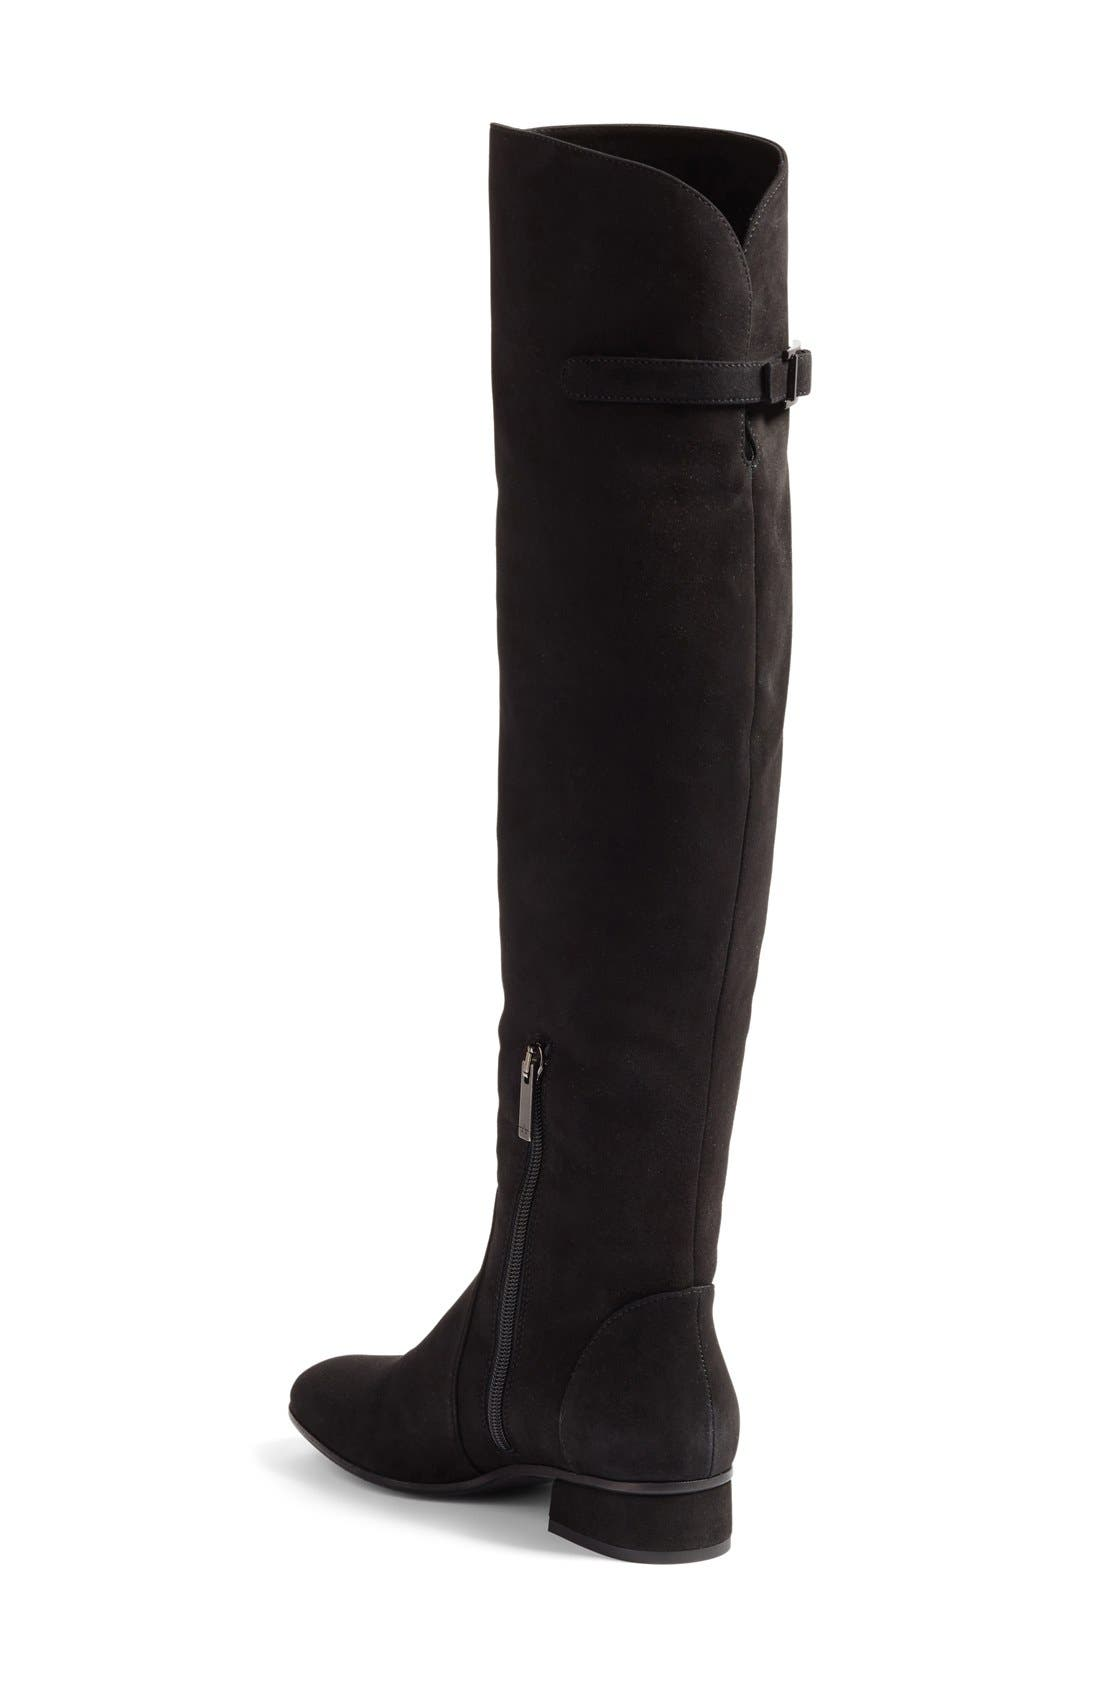 Lala Weatherproof Over the Knee Boot,                             Alternate thumbnail 4, color,                             001